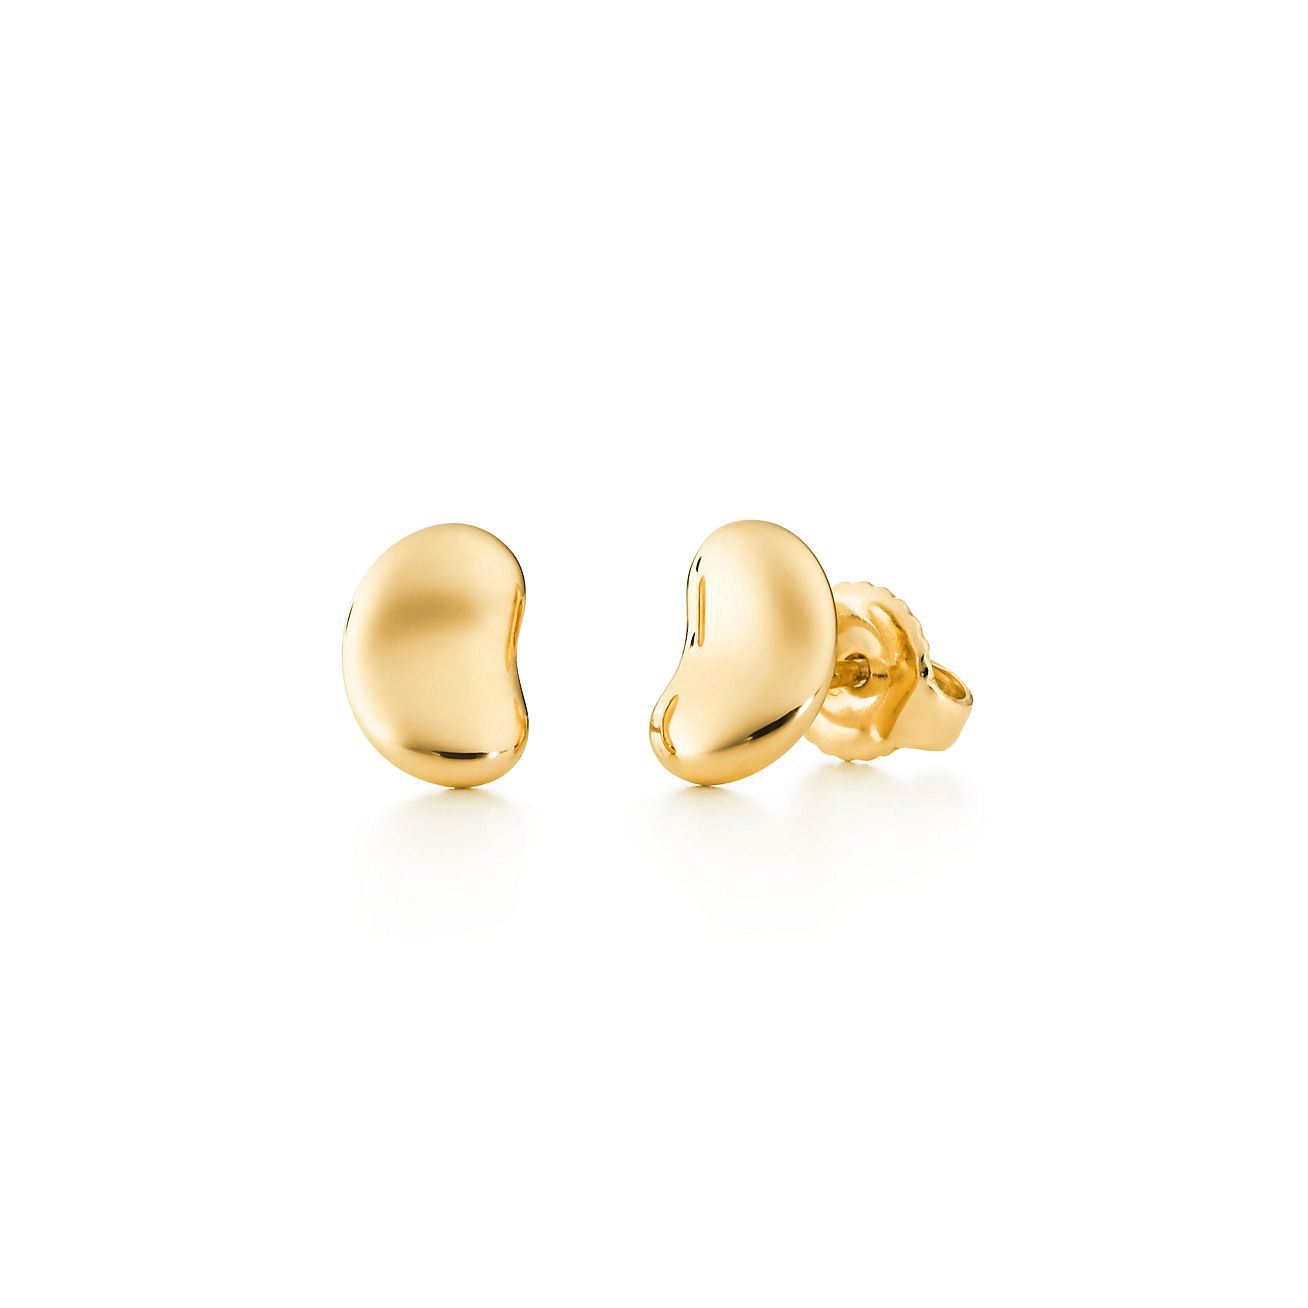 Elsa Peretti Bean earrings in 18k gold - Size 9 MM Tiffany & Co.